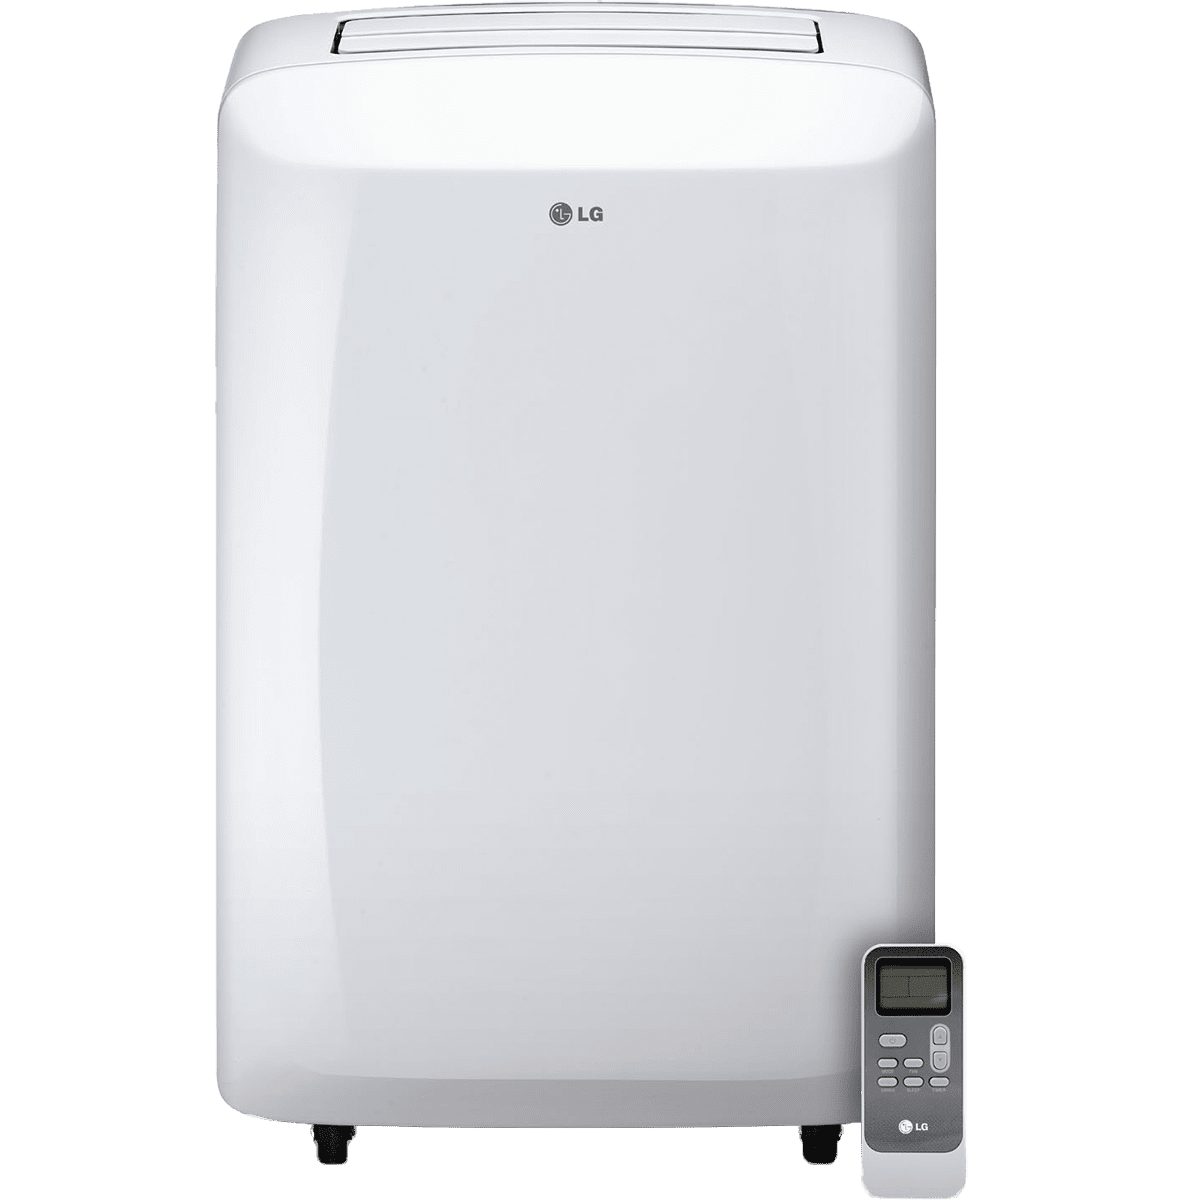 LG LP1015WSR 10,000 BTU Portable Air Conditioner lg5369